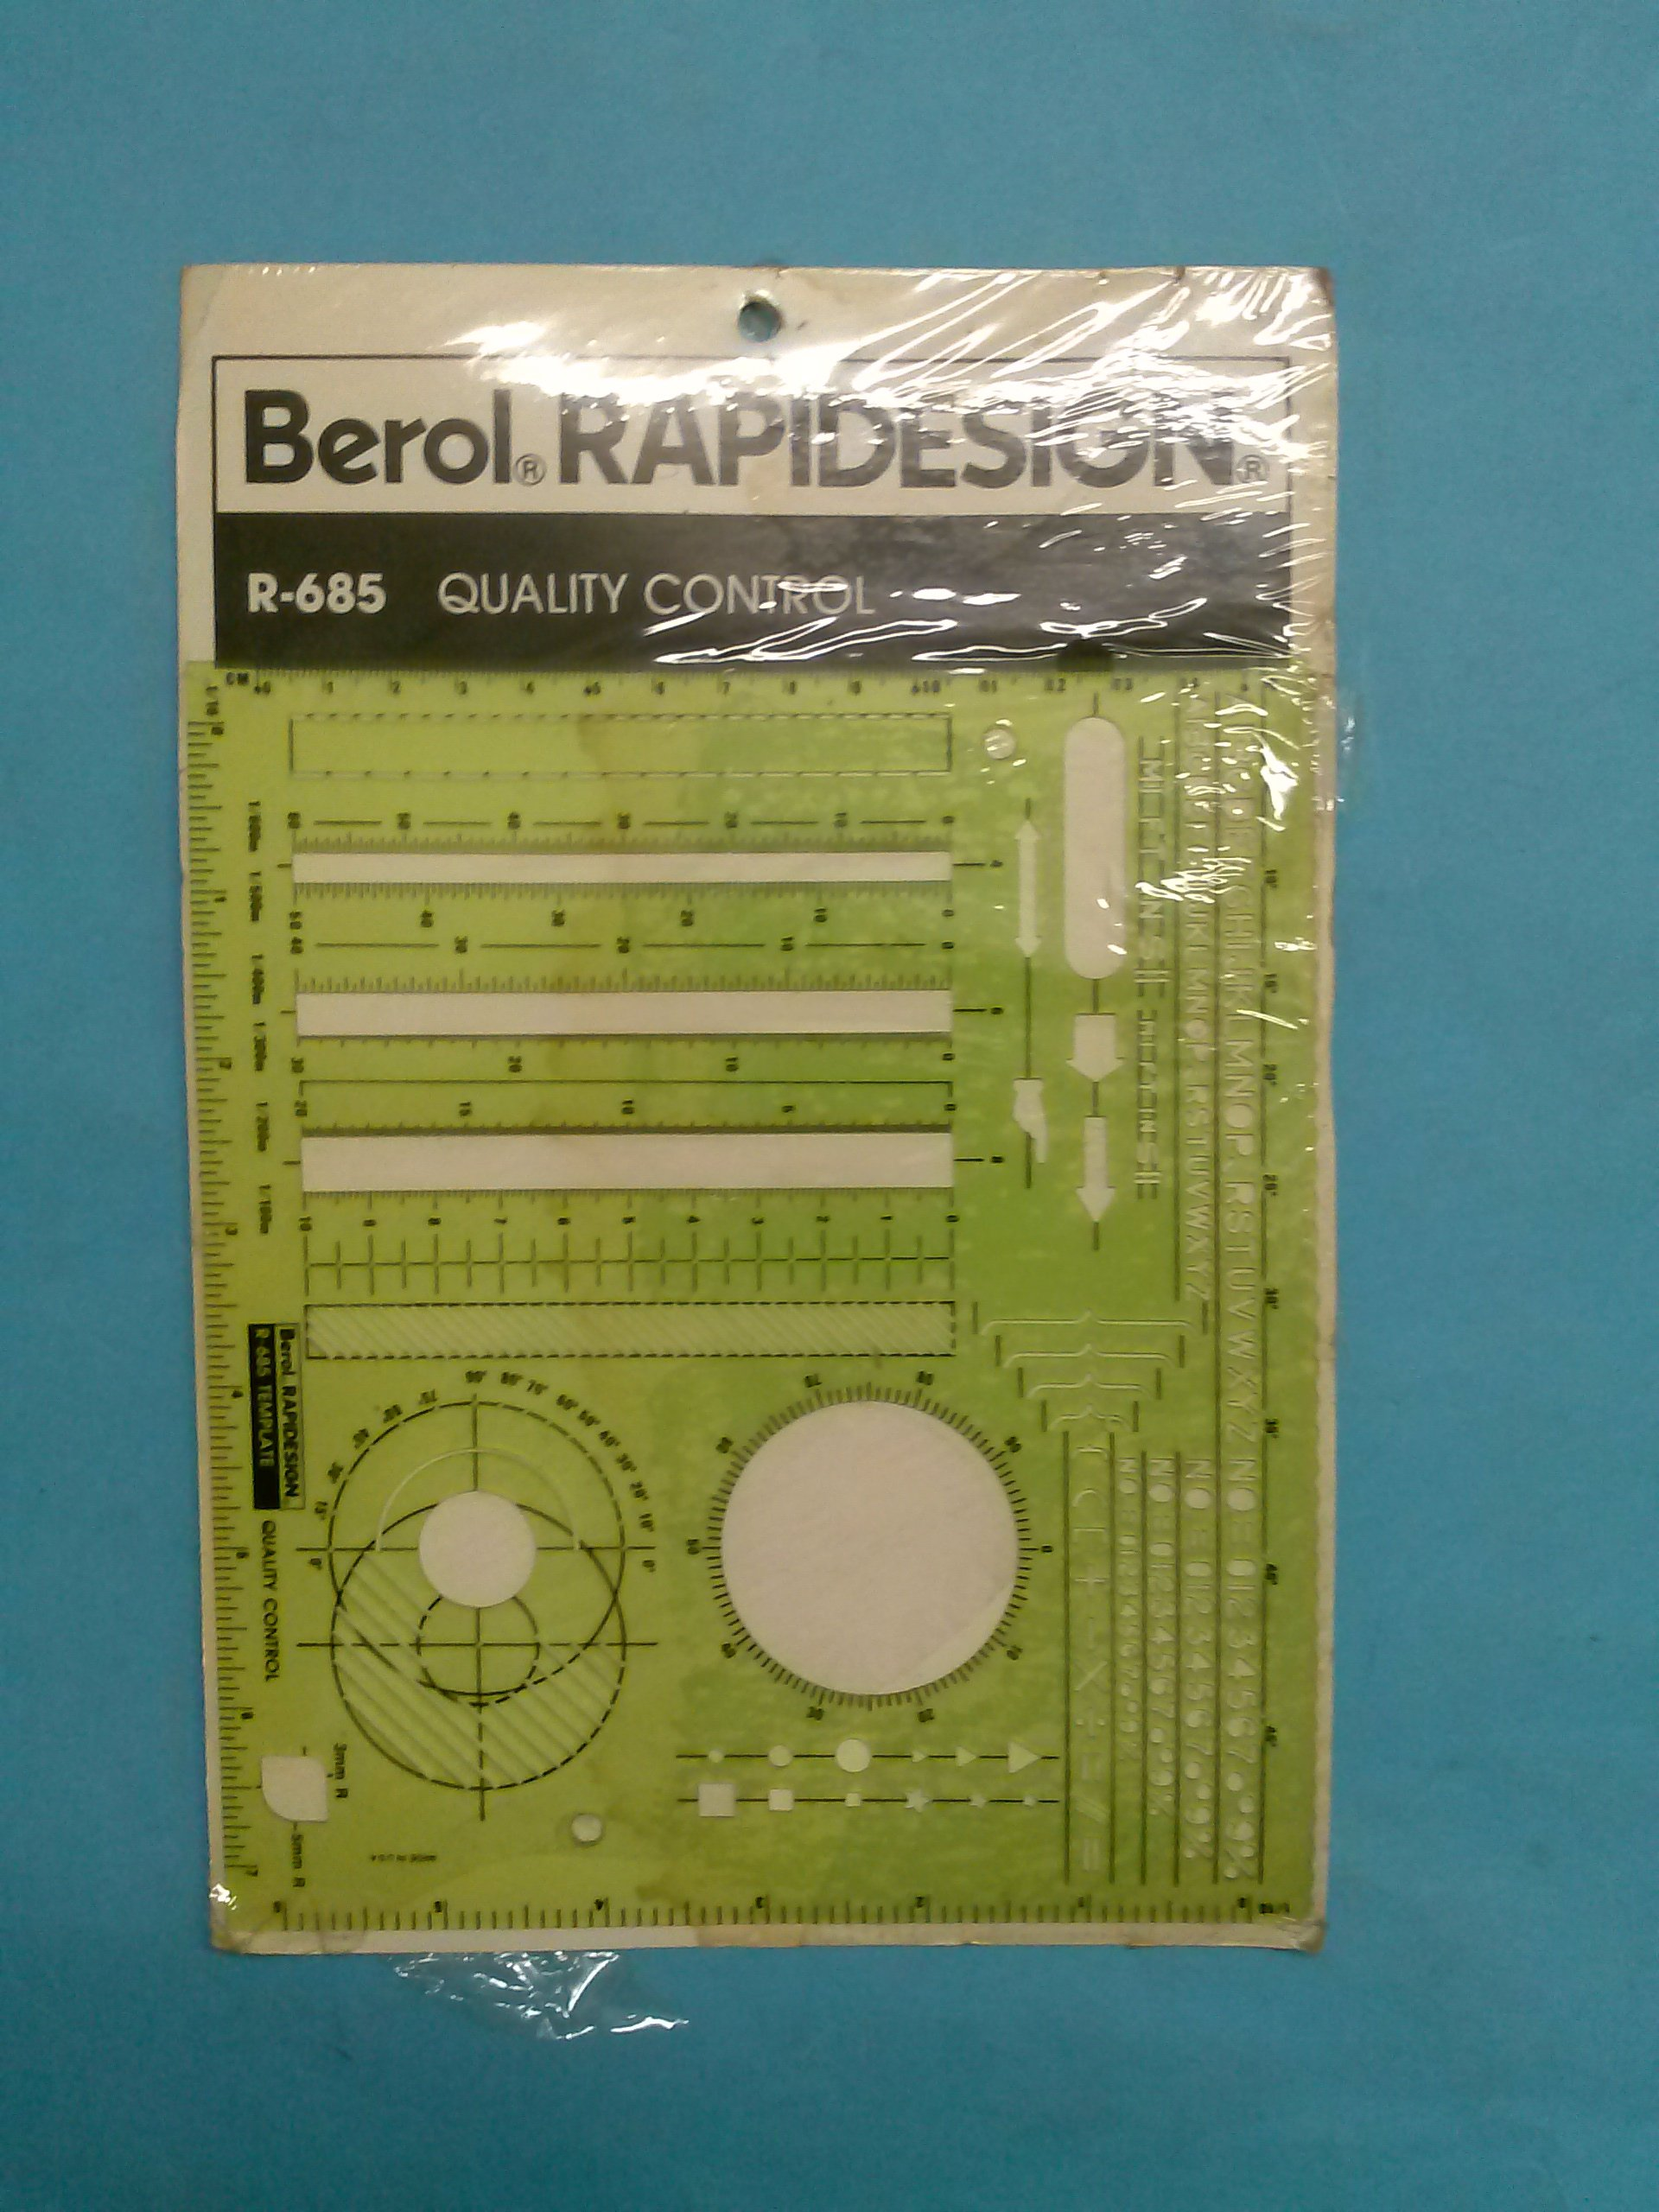 Berol R-685 RapiDesign Technical Drawing Template Quality Control (Virgin Vintage Product)